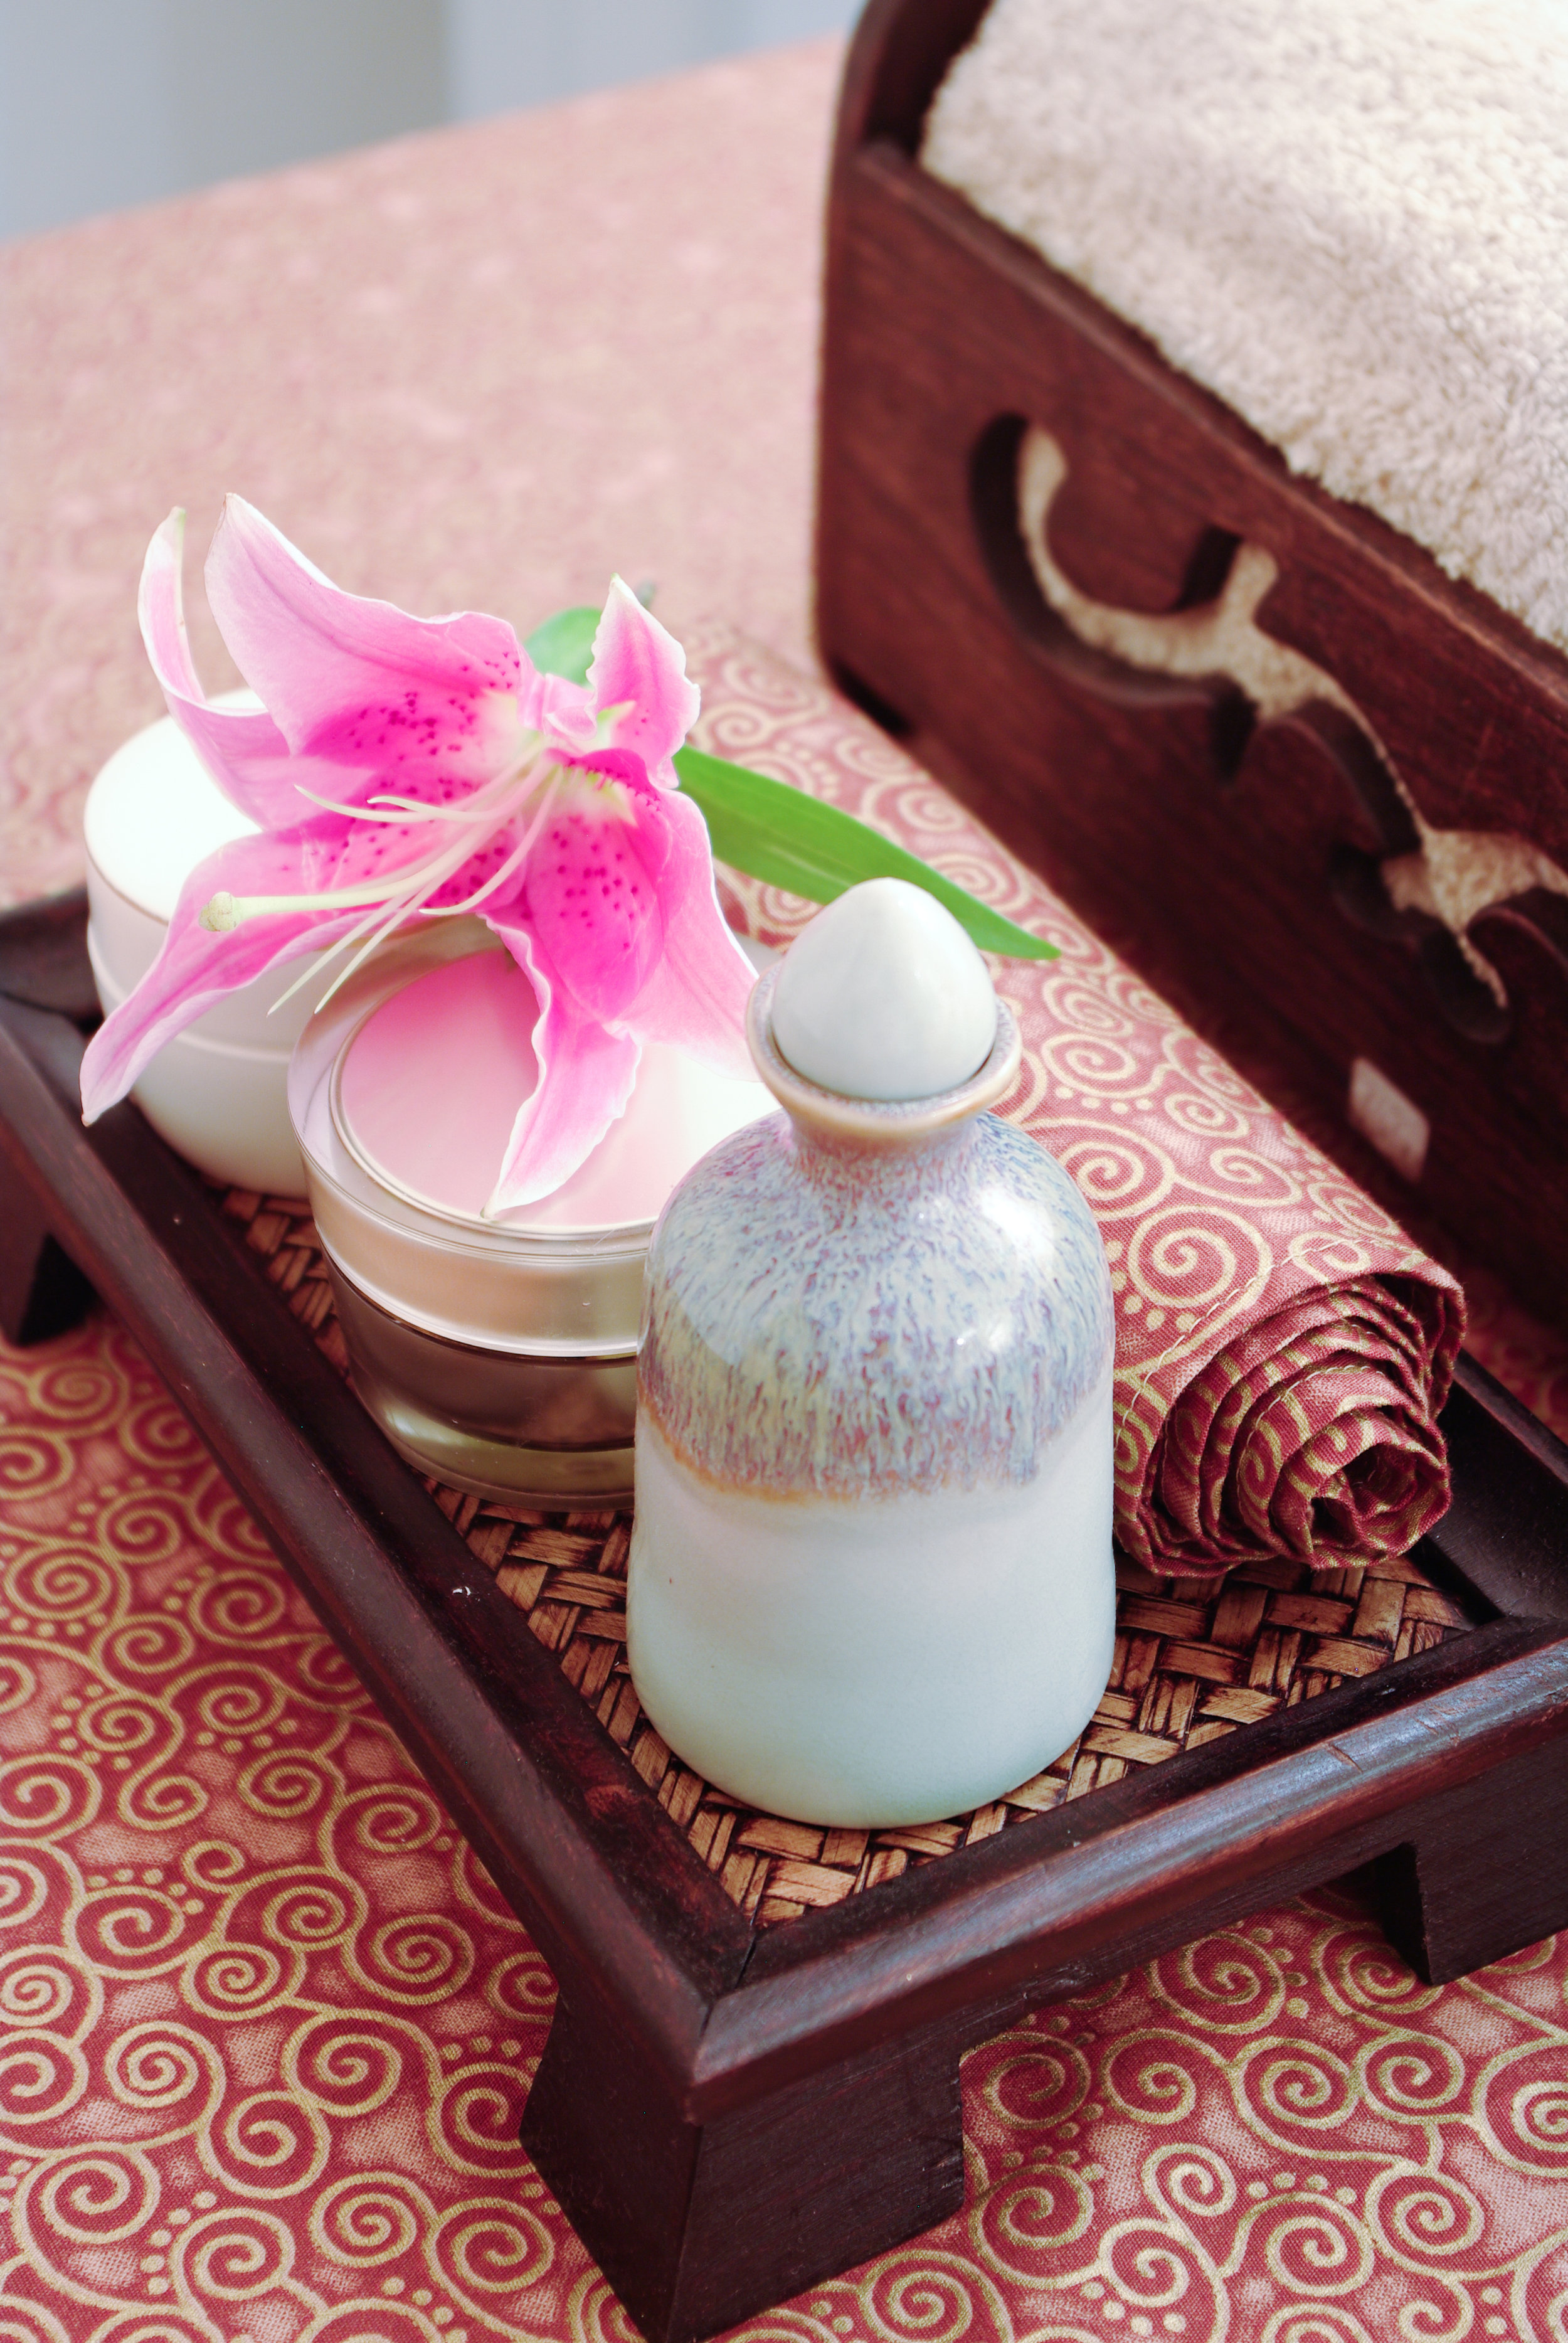 spa-products-of-thailand-set-on-spa-bed_HD3b2Fl_2fx.jpg